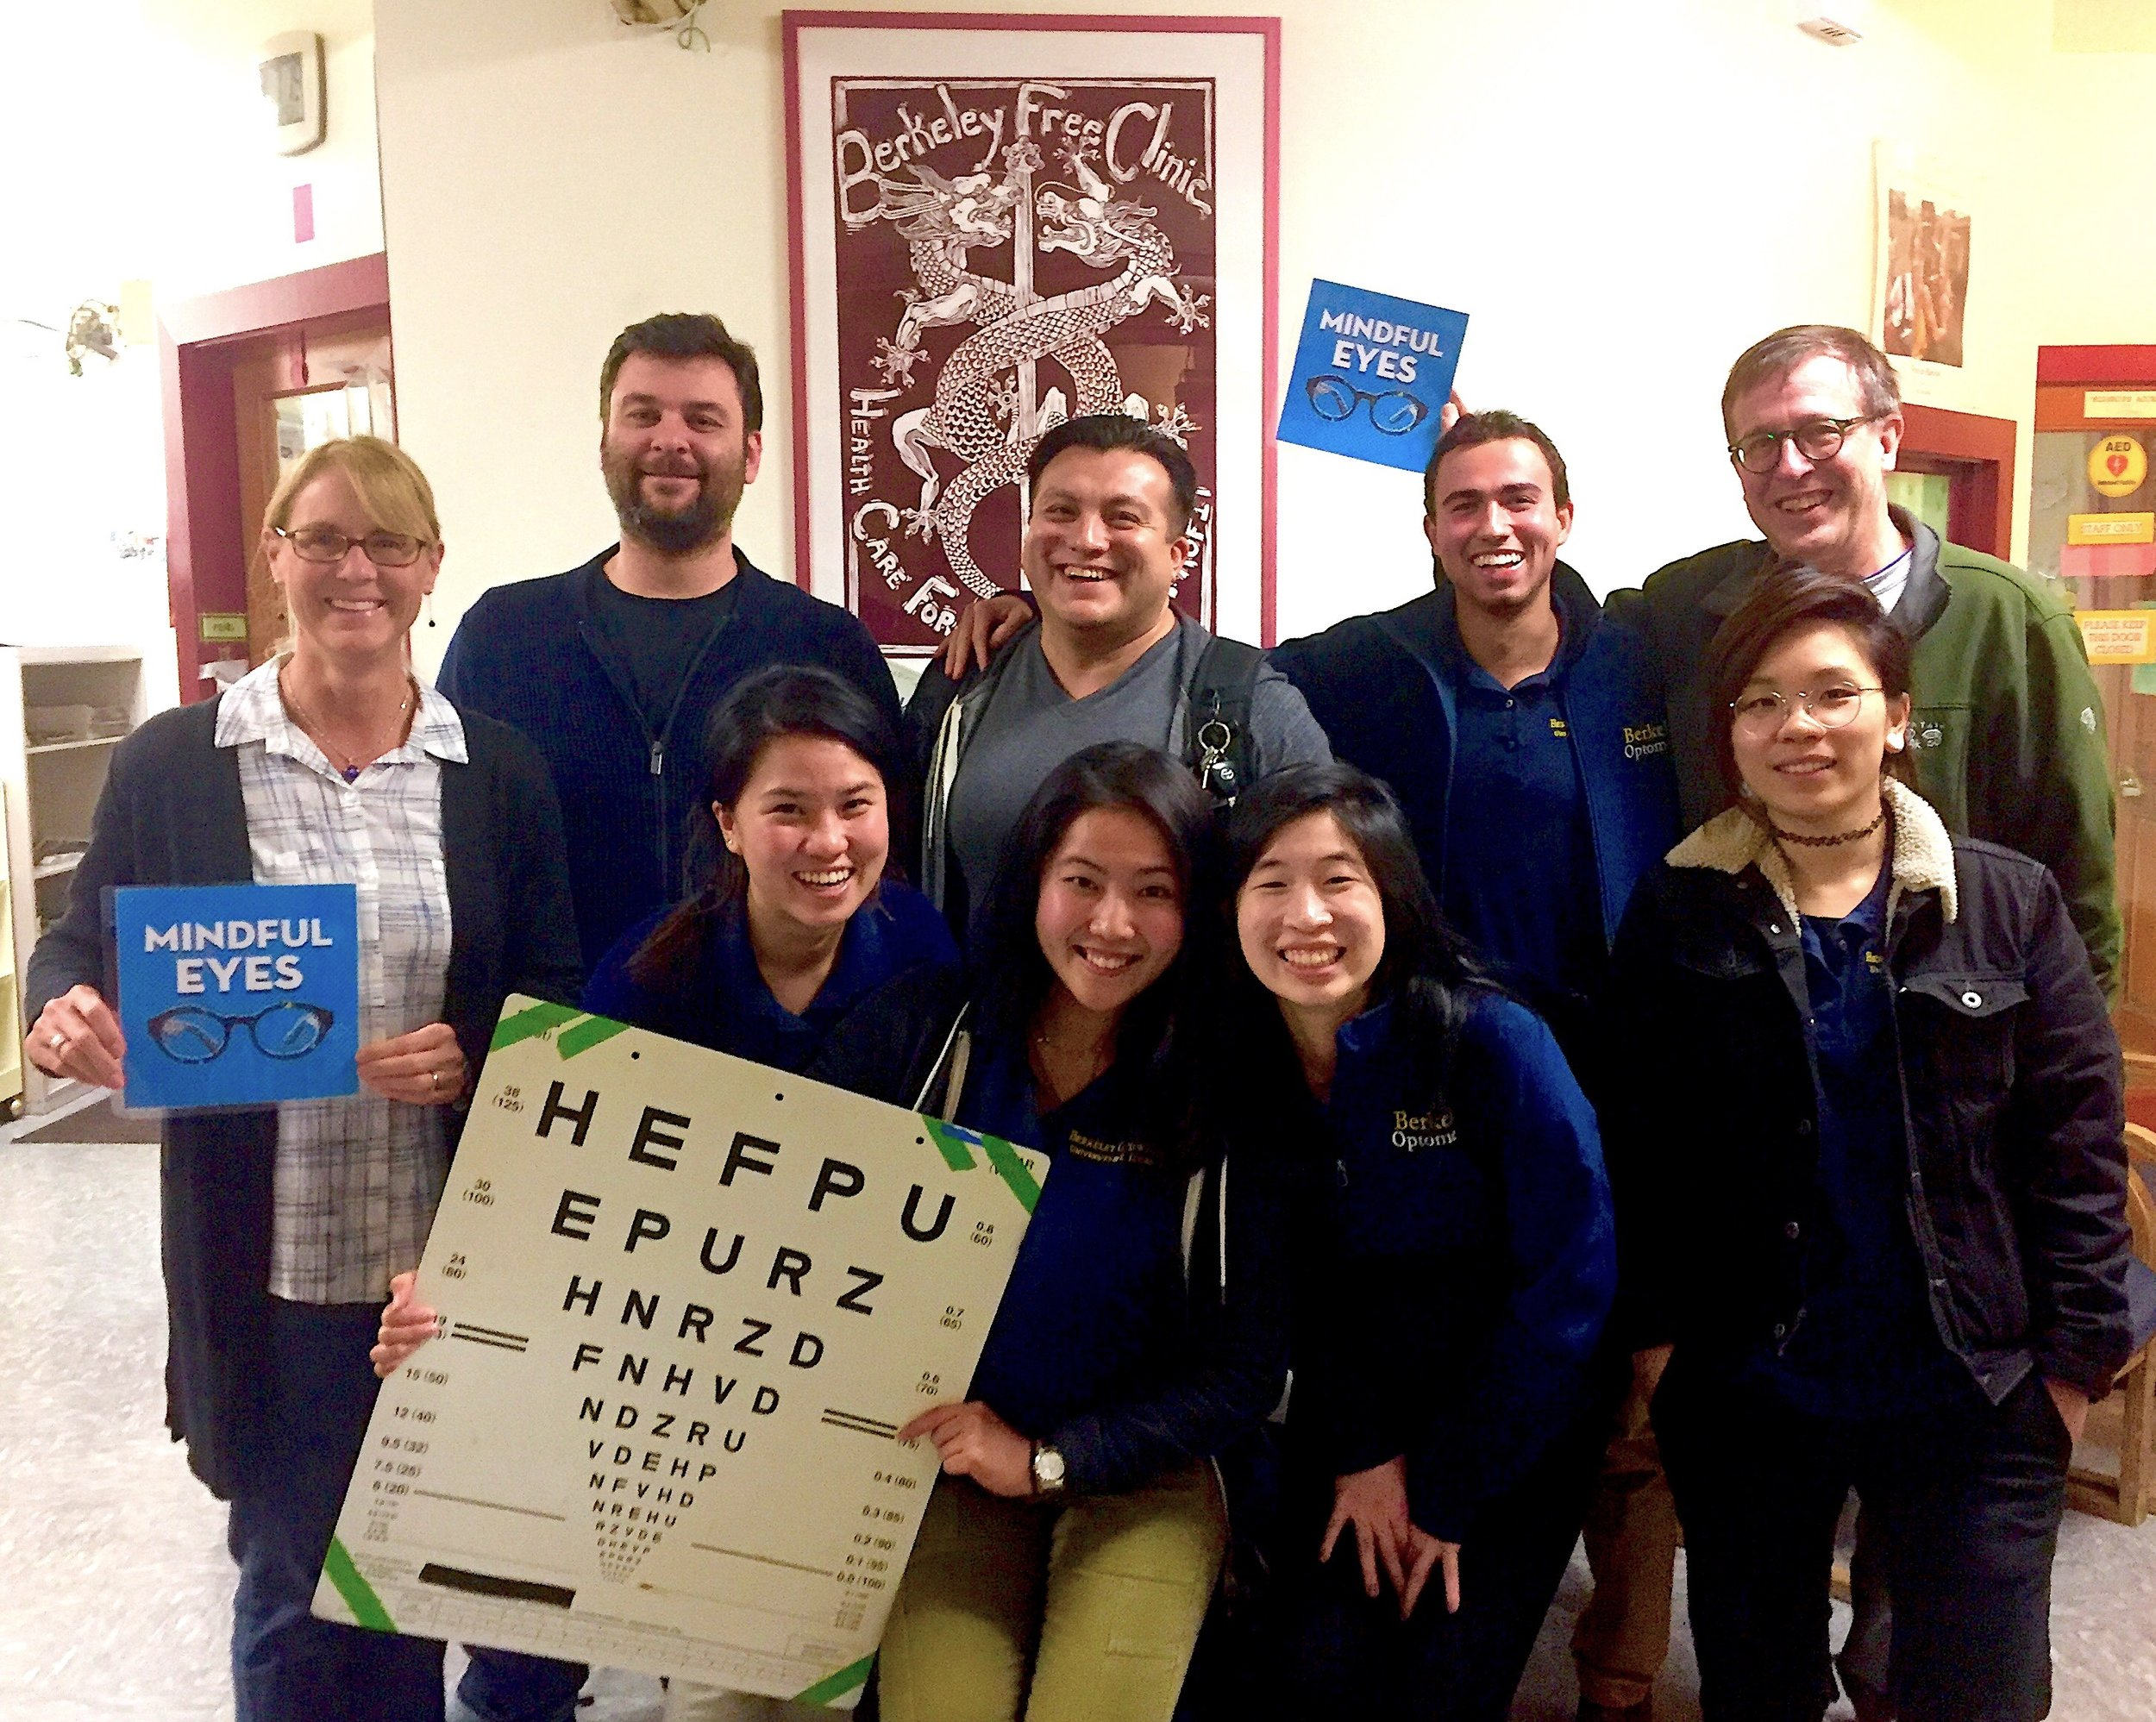 Dr Michelle Hoff (left) of uc Berkeley's school of optometry and the Mindful Eyes Foundation with her crew of optometry volunteers